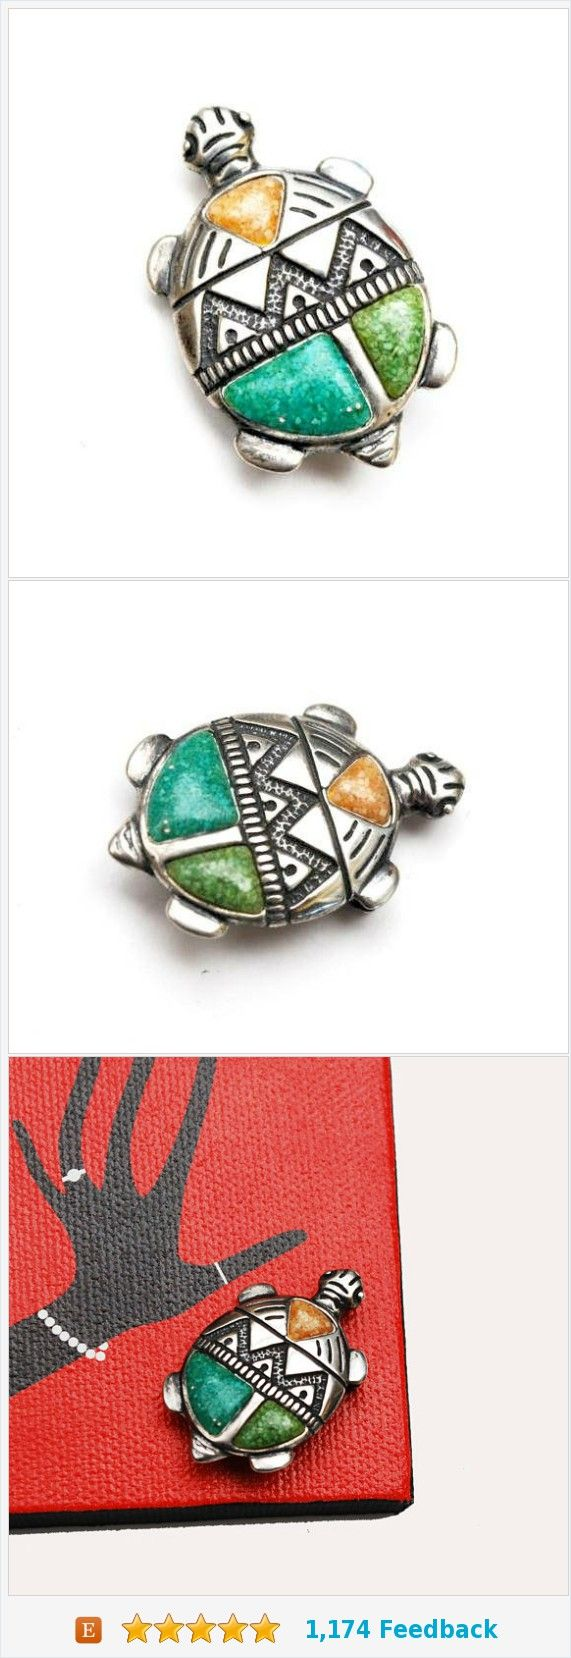 Sterling Turtle Brooch Pendant -Gemstone Figurine pin - green blue turquoise orange stone chip - signed Sterl - Southwestern https://www.etsy.com/serendipitytreasure/listing/554034059/sterling-turtle-brooch-pendant-gemstone?ref=listing_published_alert